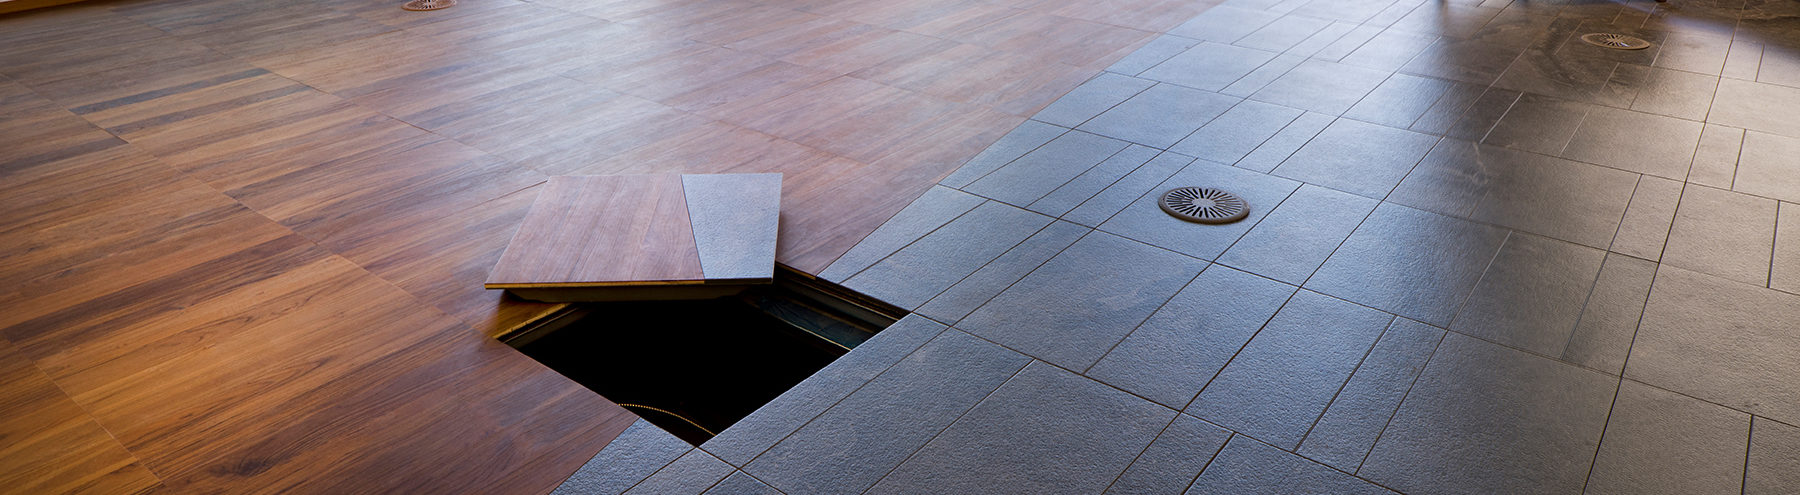 Airflow accessories for raised access flooring in Melbourne